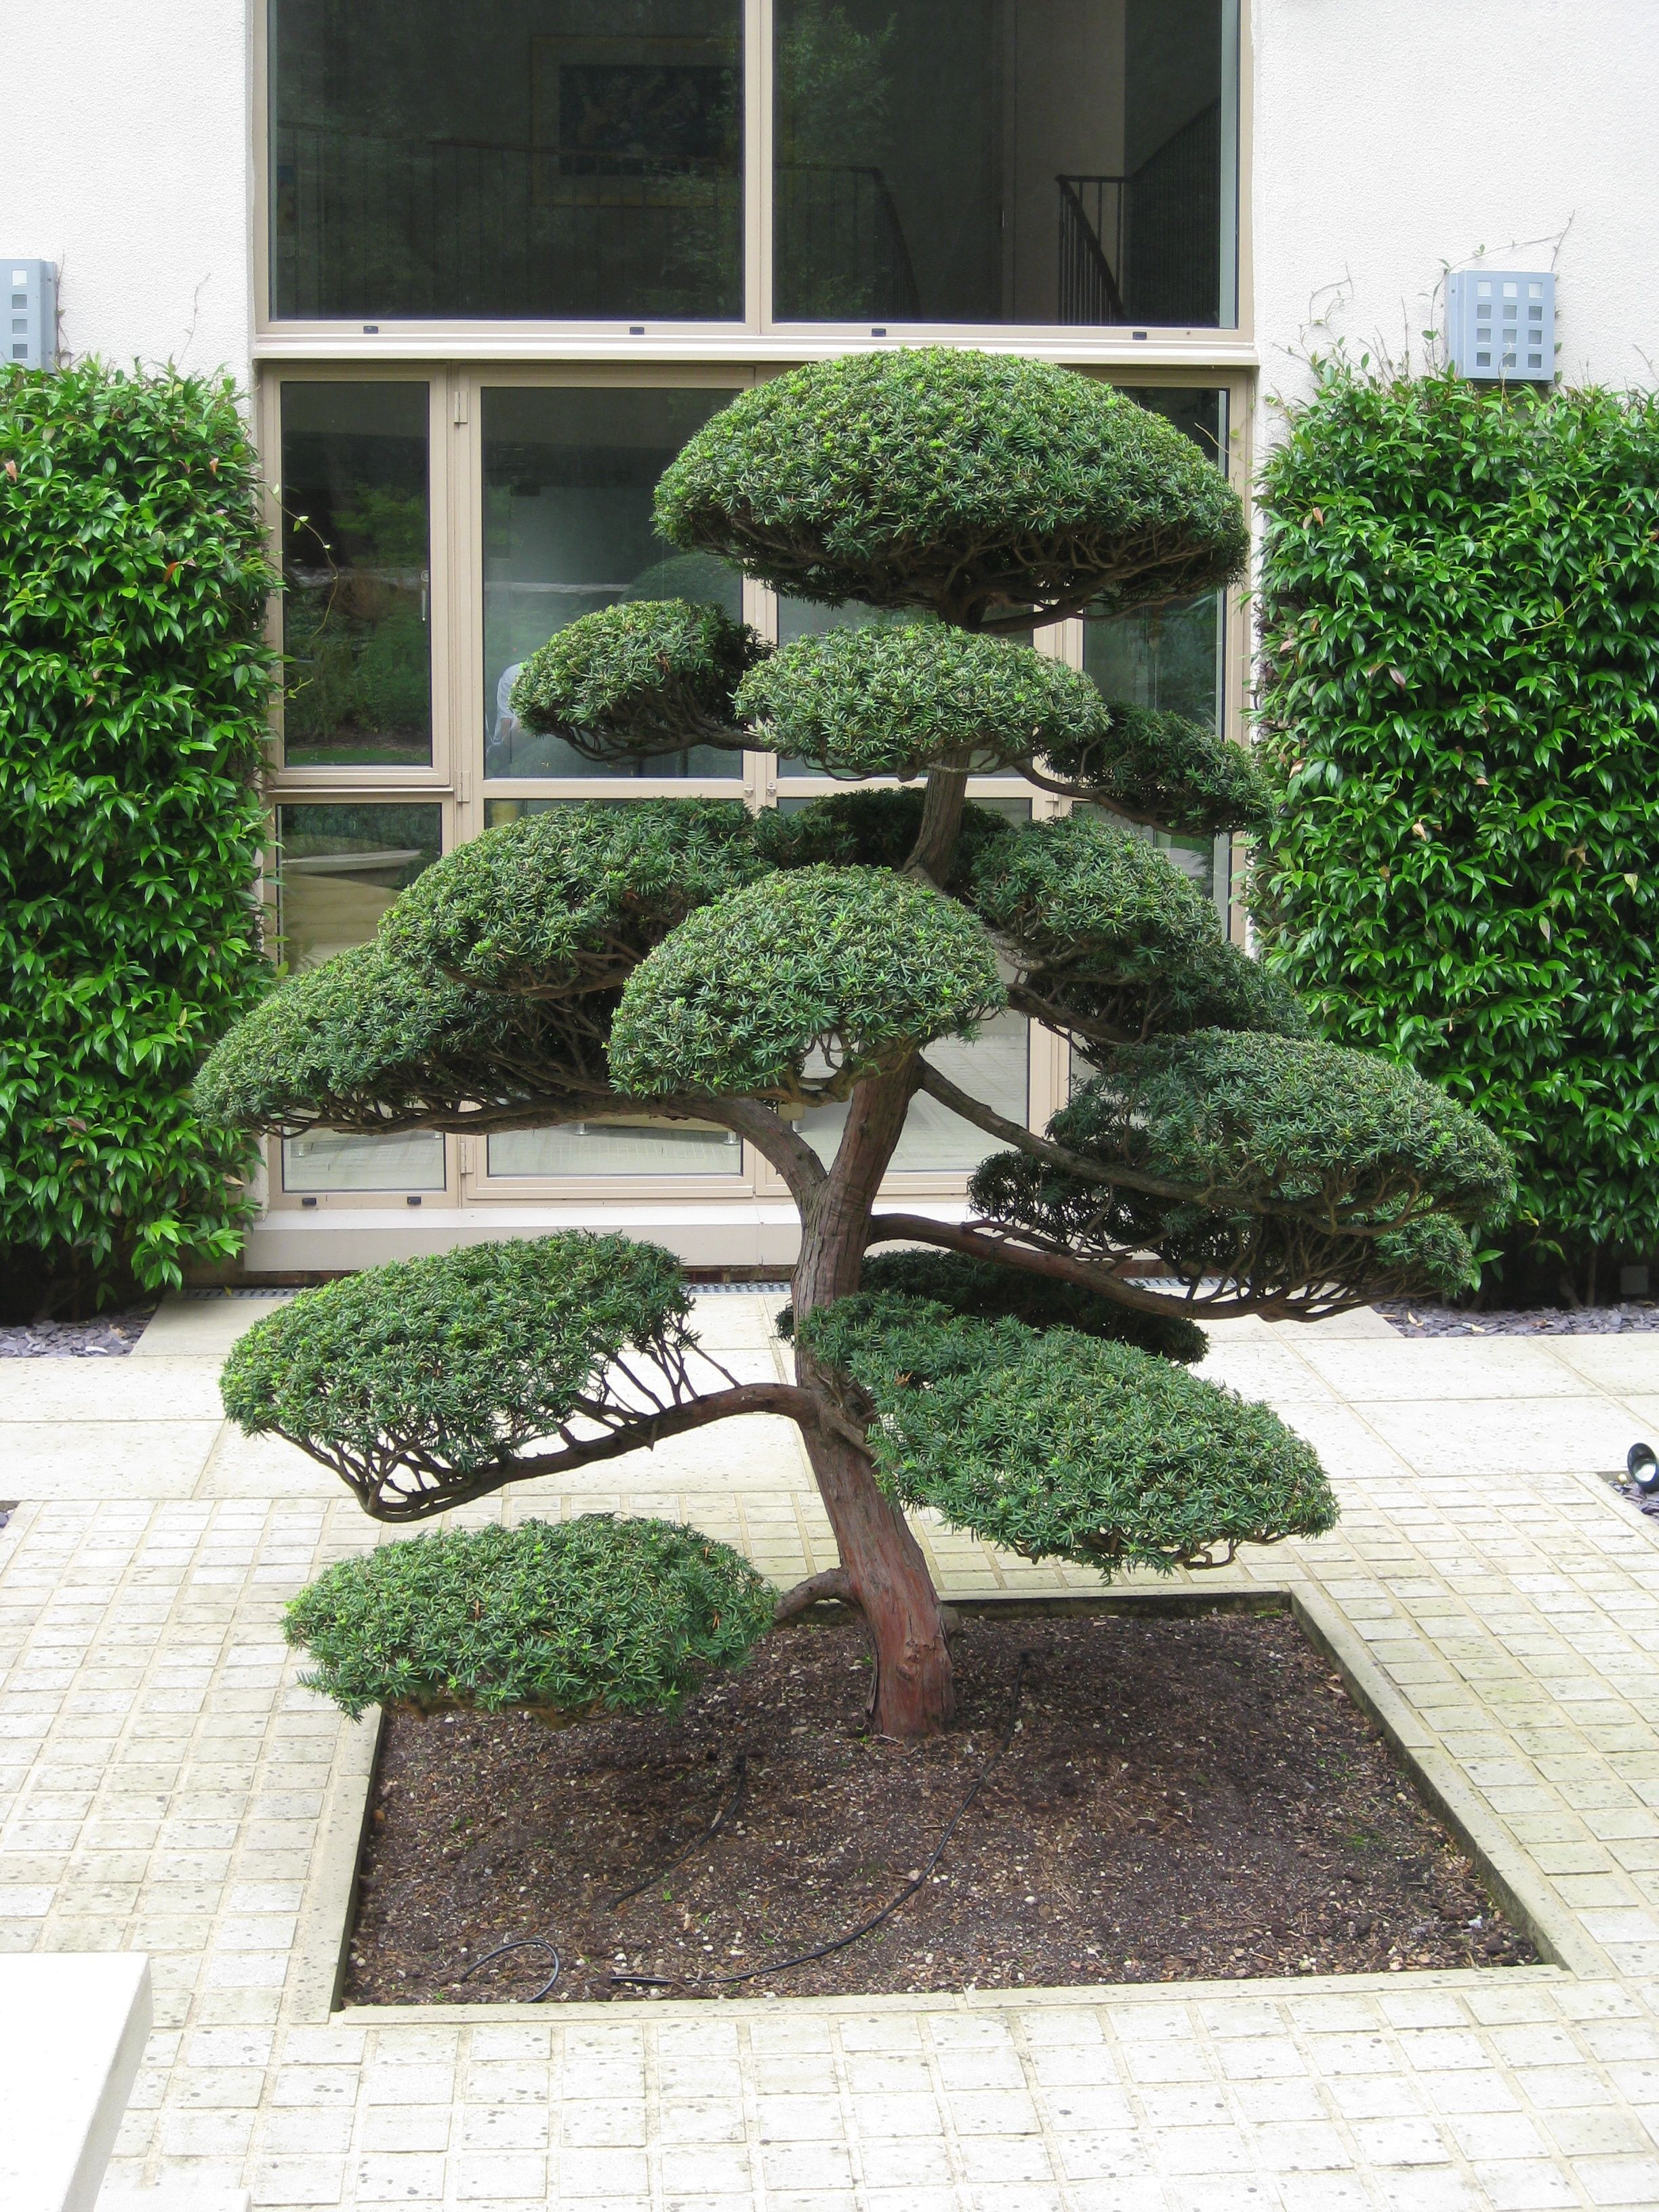 We Could Have A Niwaki Ilex Crenate For The Focal Point In Raised Brick Bed